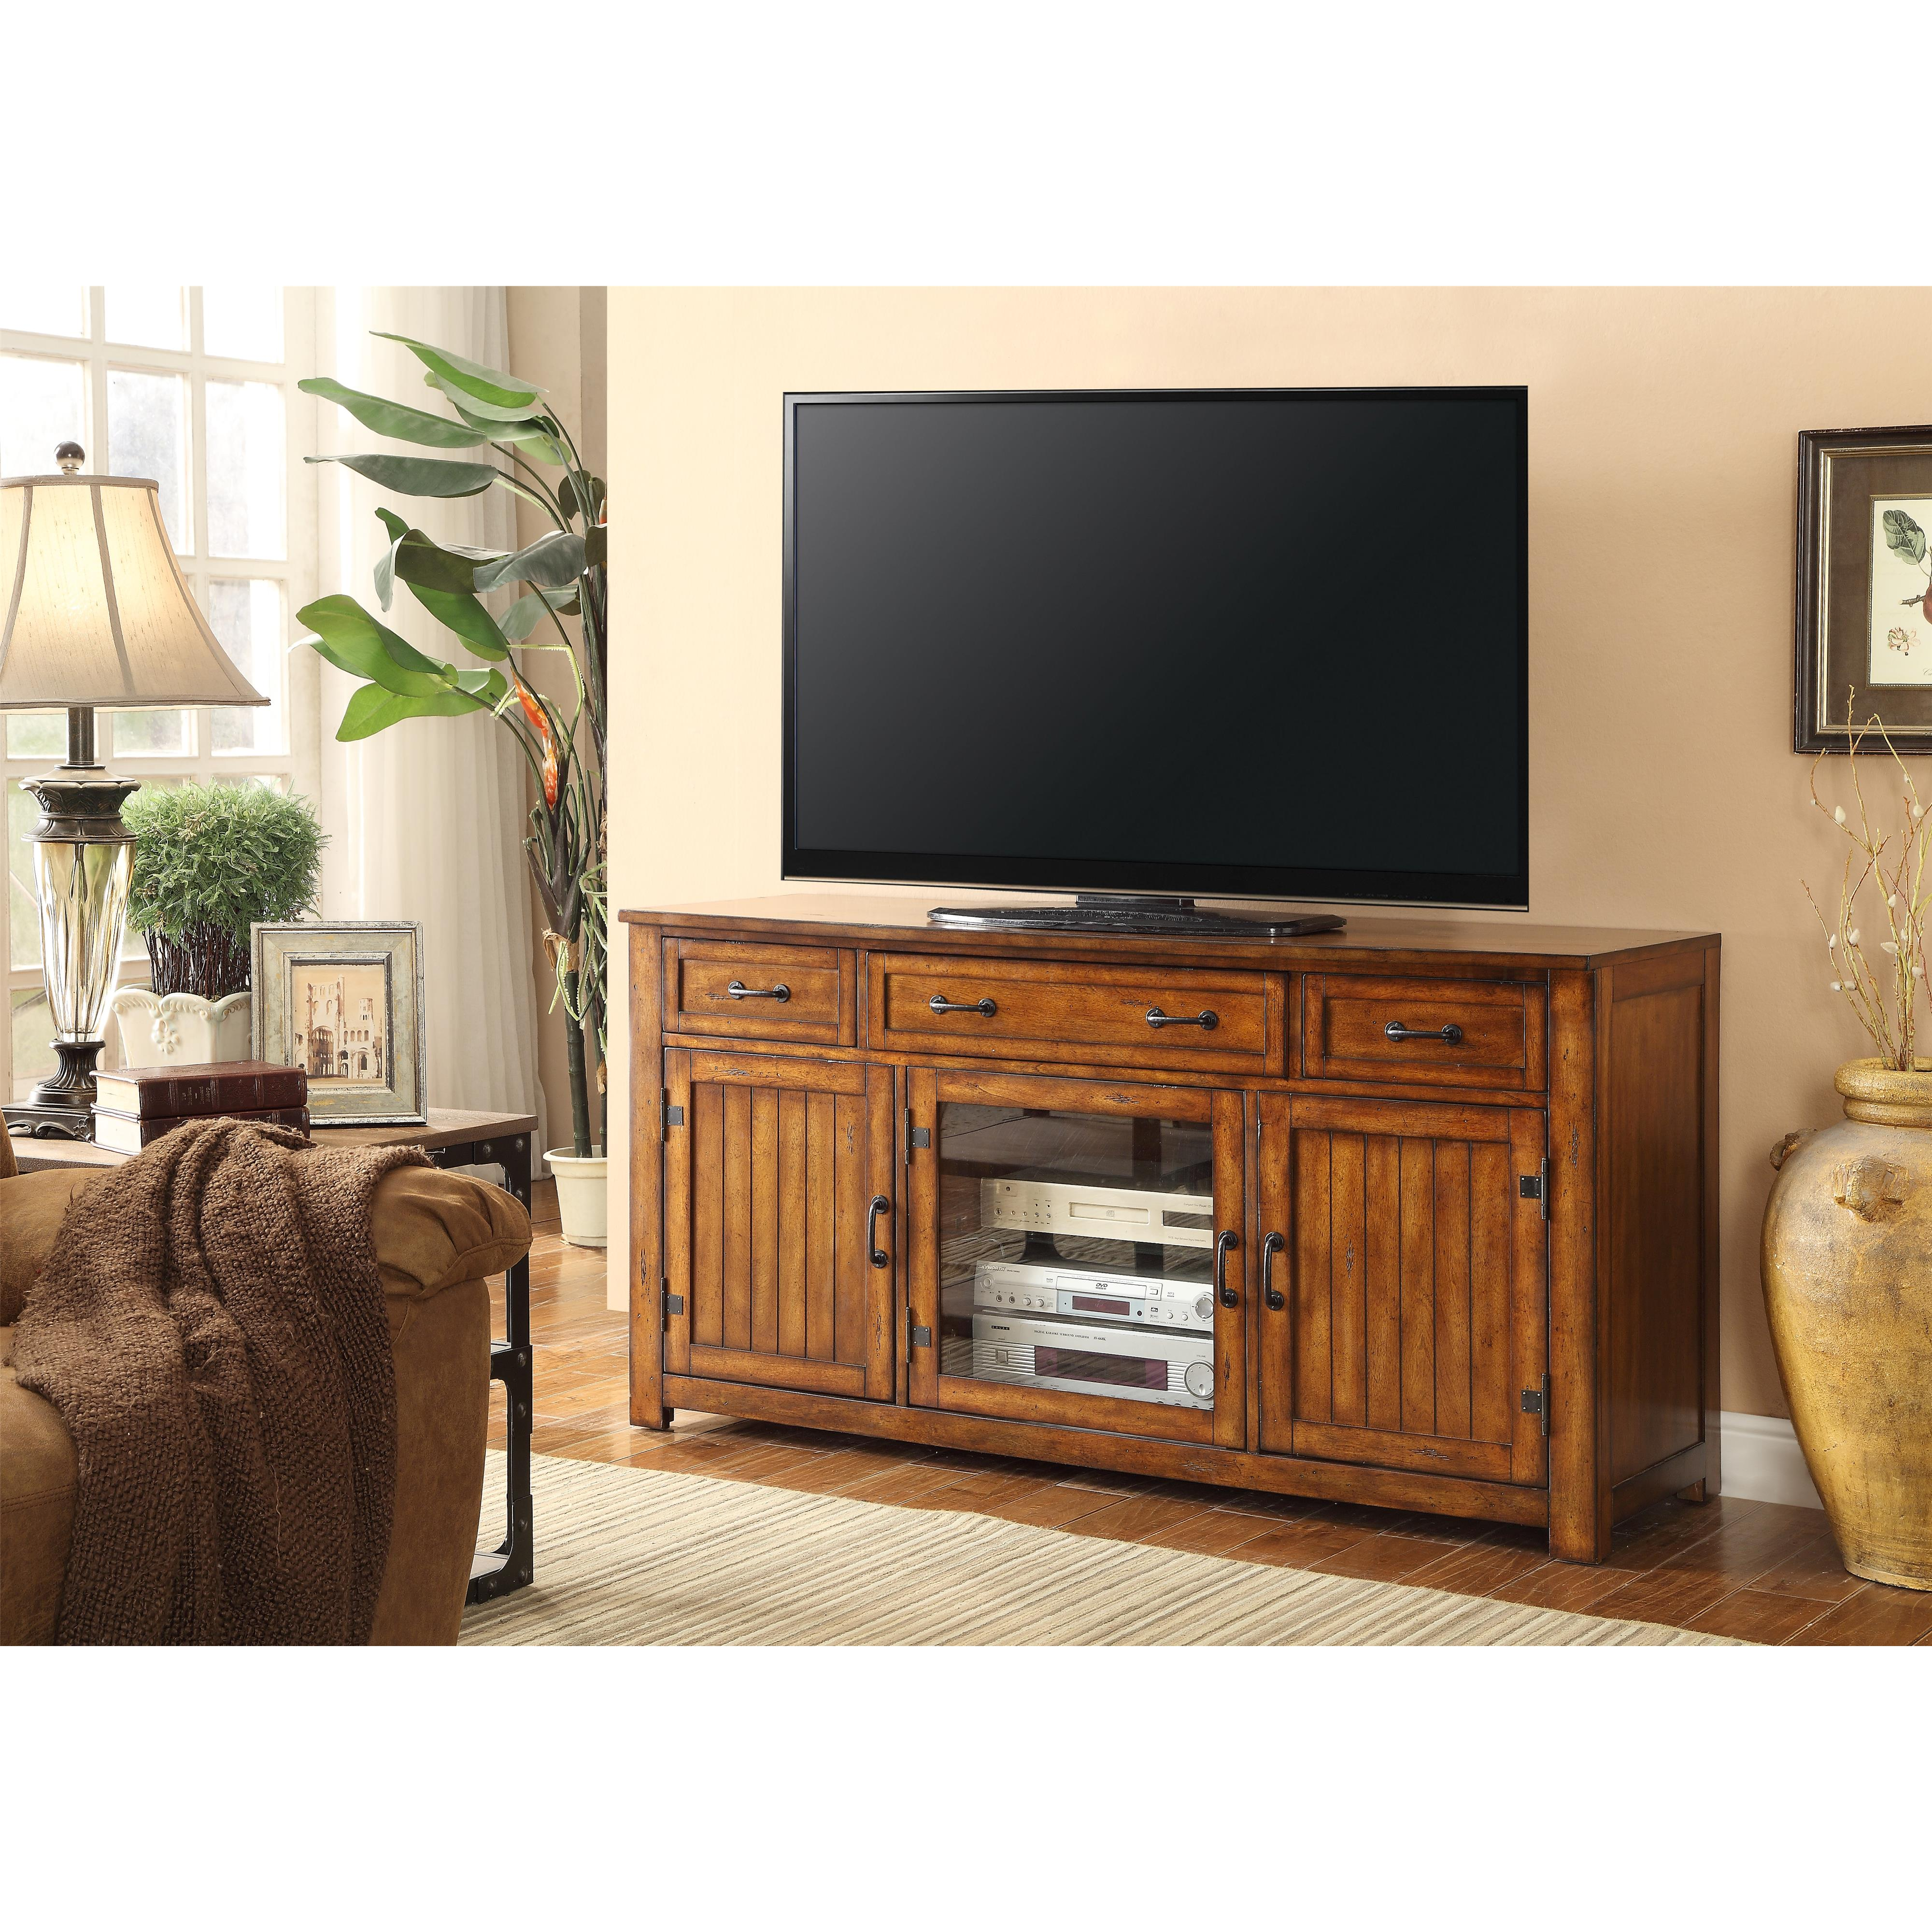 "Legends Furniture Industrial Collection Industrial 64"" TV Console - Item Number: ZIND-1000"